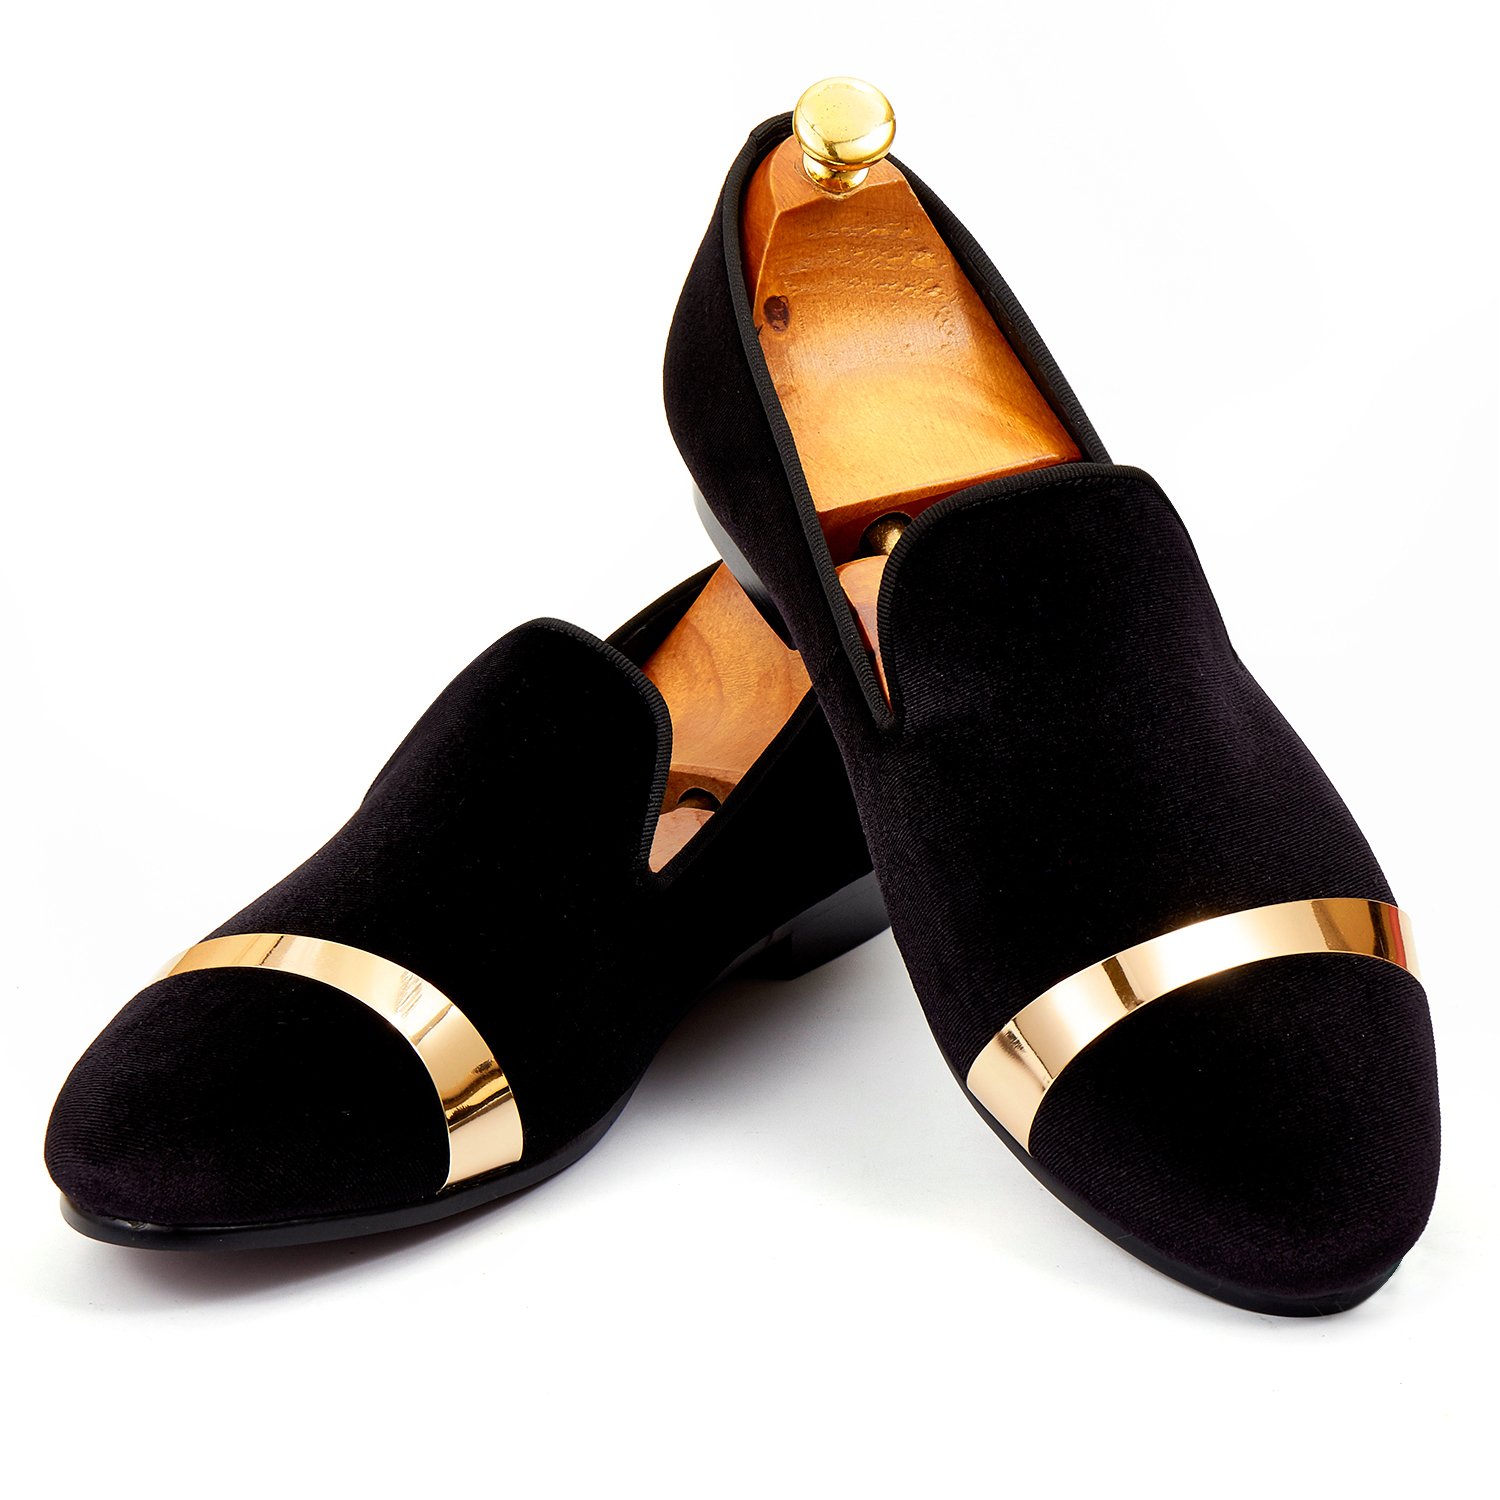 Harpelunde Slip On Men Dress Shoes Black Velvet Loafers With Gold Plate Handmade Flat Shoes Size 7-14 free shipping women casual flat shoes fashion slip on round toe loafers lace fashion wedge flats hollow out white canvas shoes